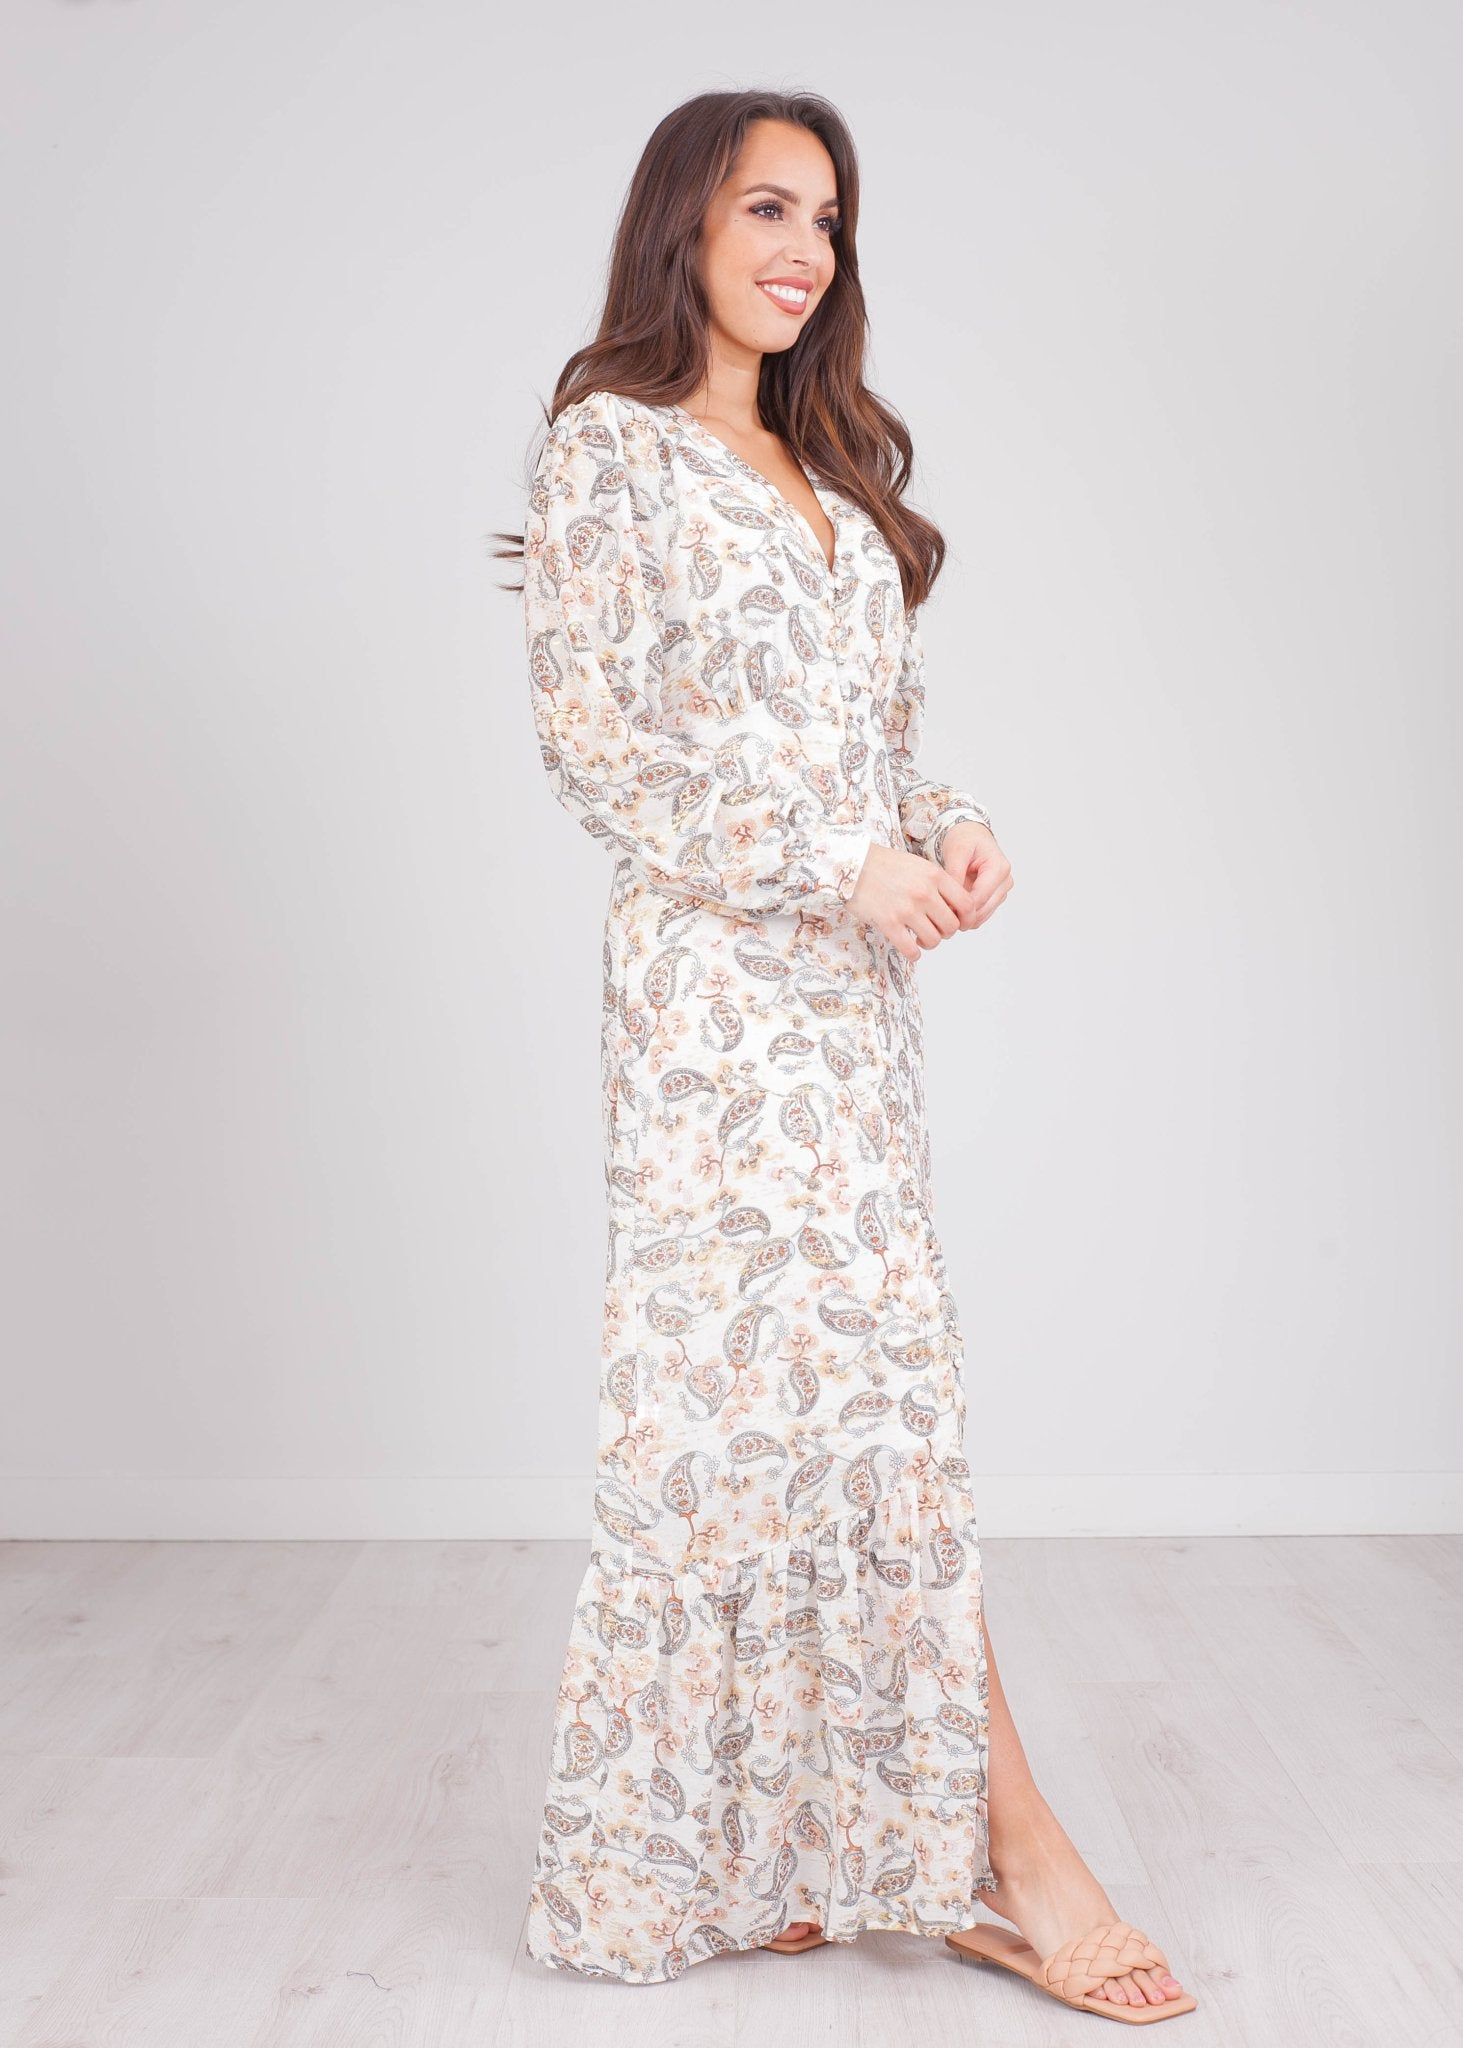 Emilia Paisley Printed Dress - The Walk in Wardrobe